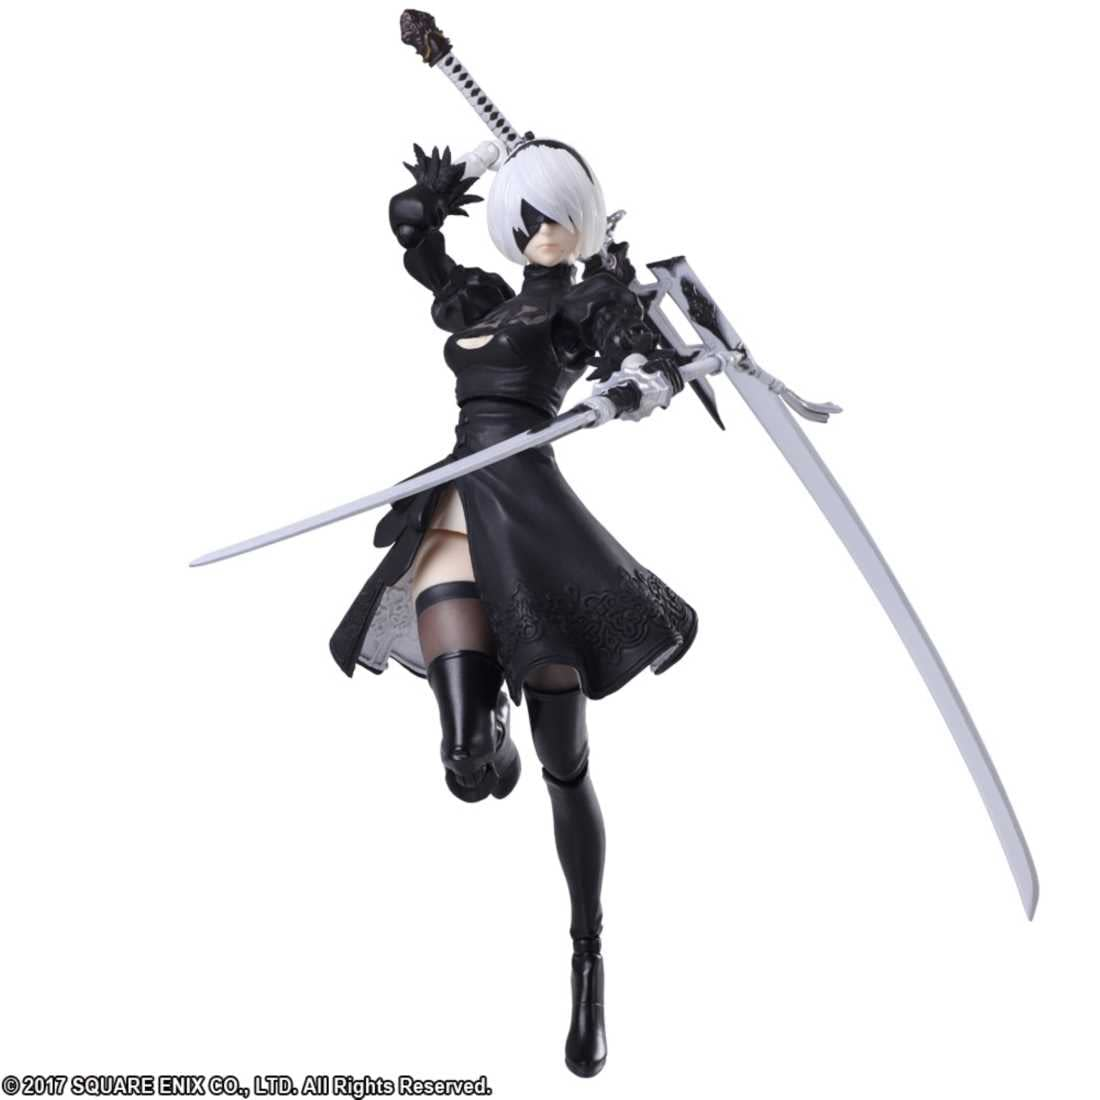 Nier Automata YoRHa 2B Gets Her Own Figure from Bring Arts